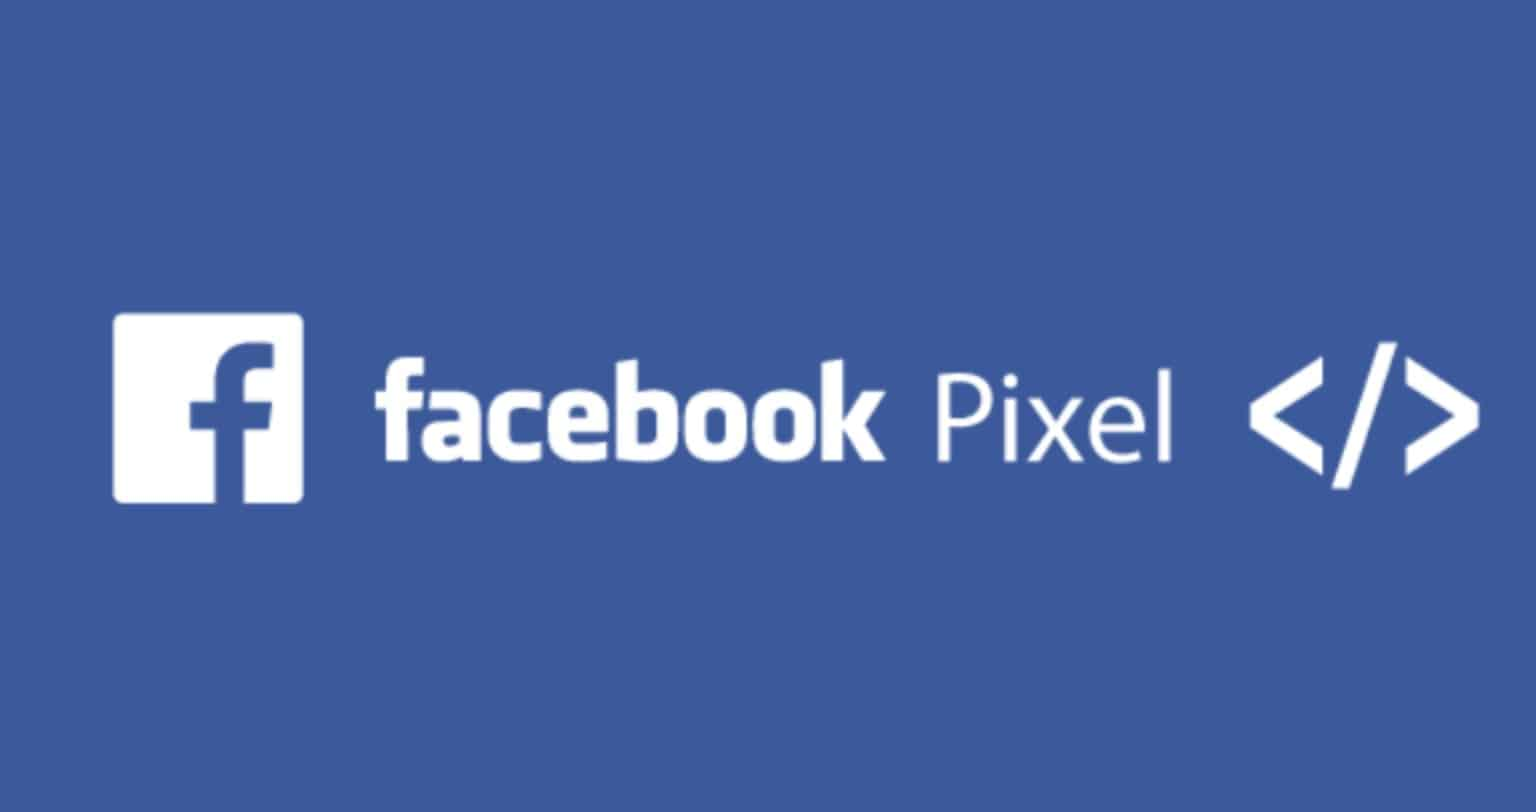 Facebook-Pixel-Helper-Portent